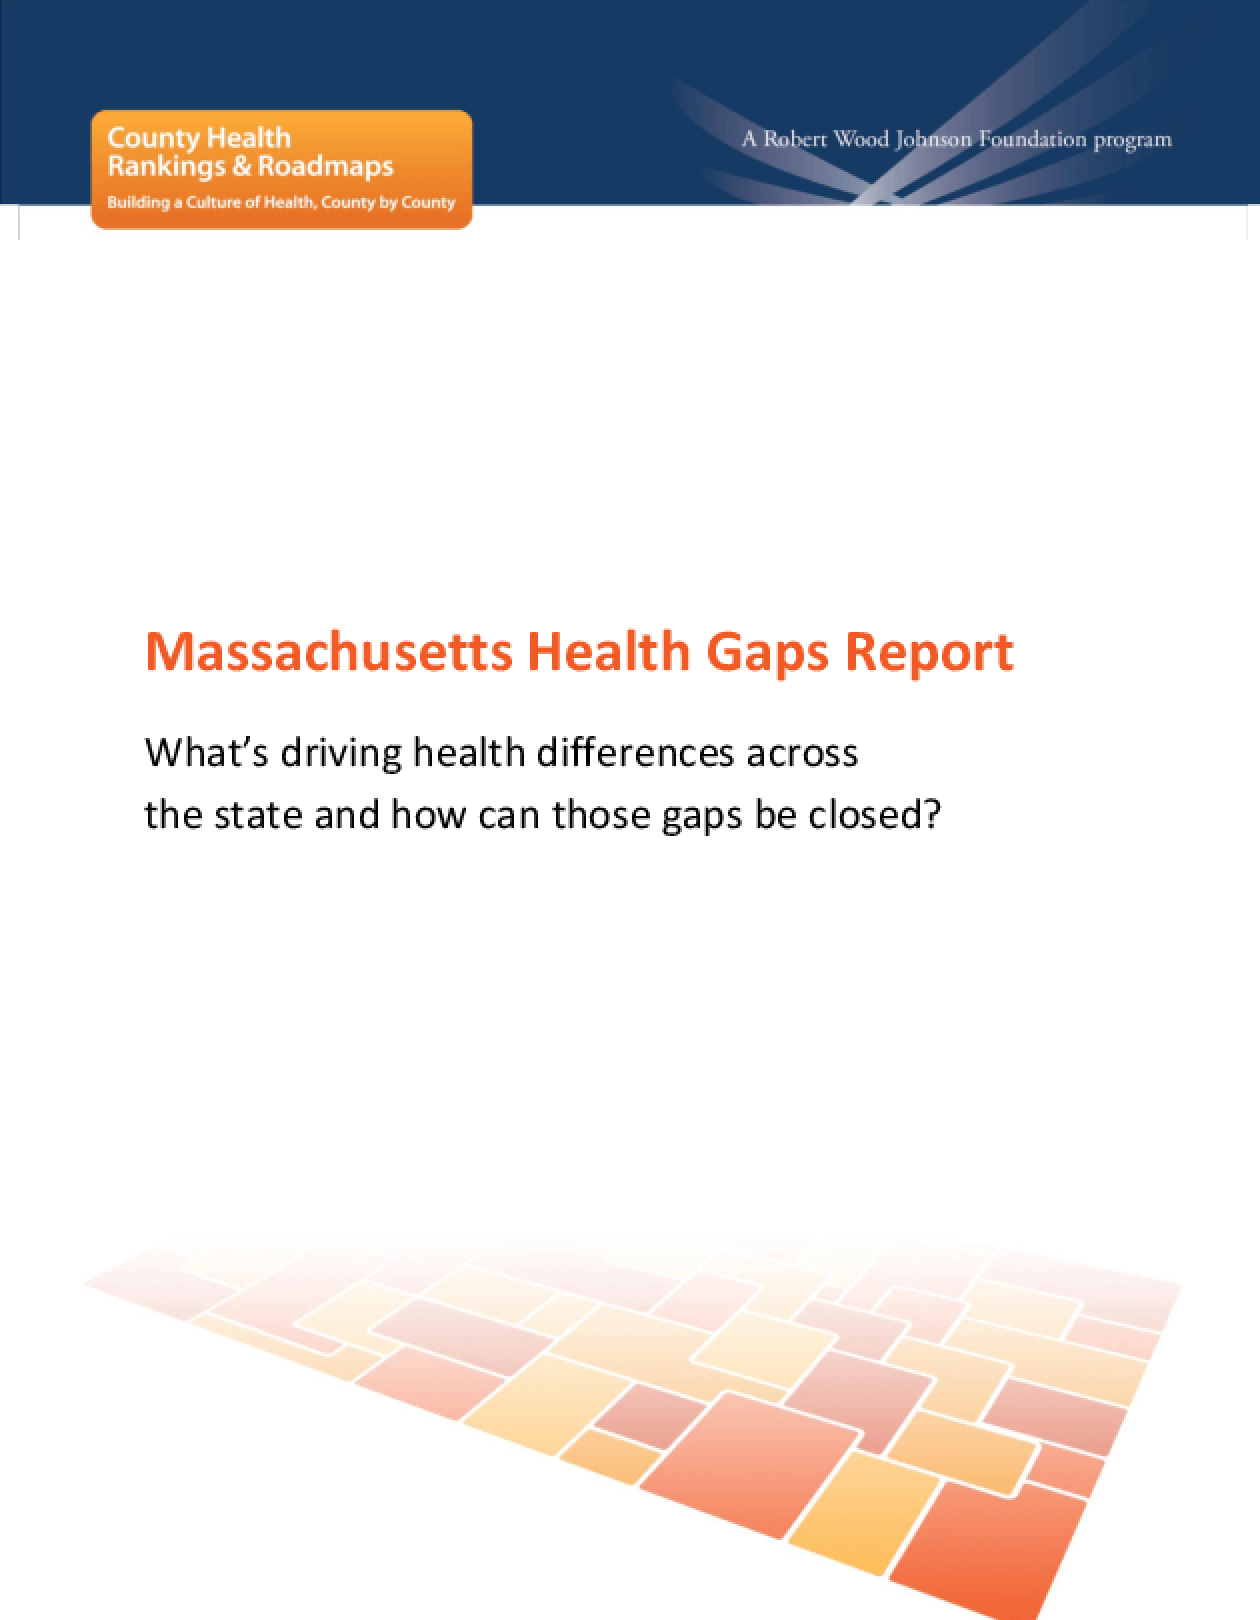 Massachusetts Health Gaps Report: What's Driving Health Differences Across the State and How Can Those Gaps Be Closed?